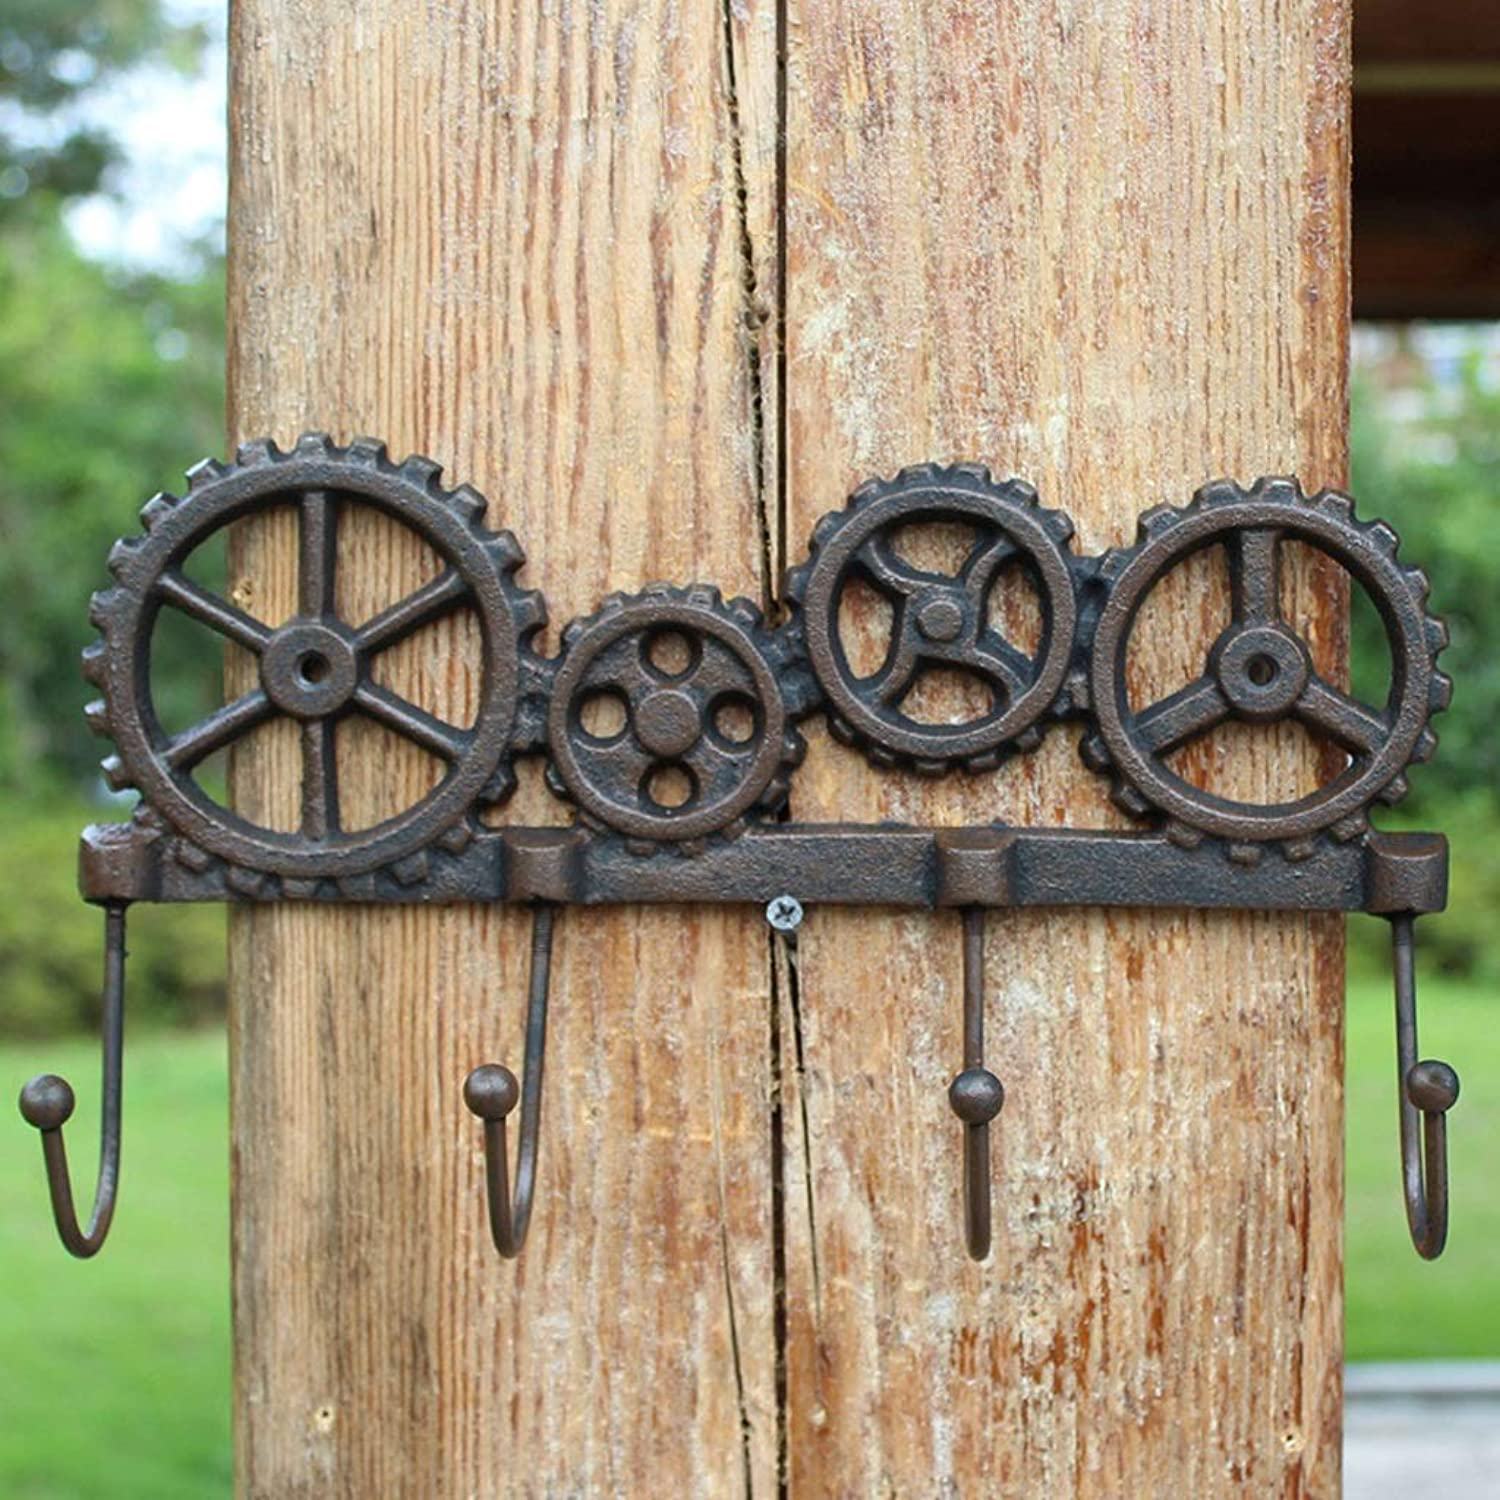 XUYRENP Vintage Industrial Style Cast Iron Creative Gear Wall Home Decoration Hook